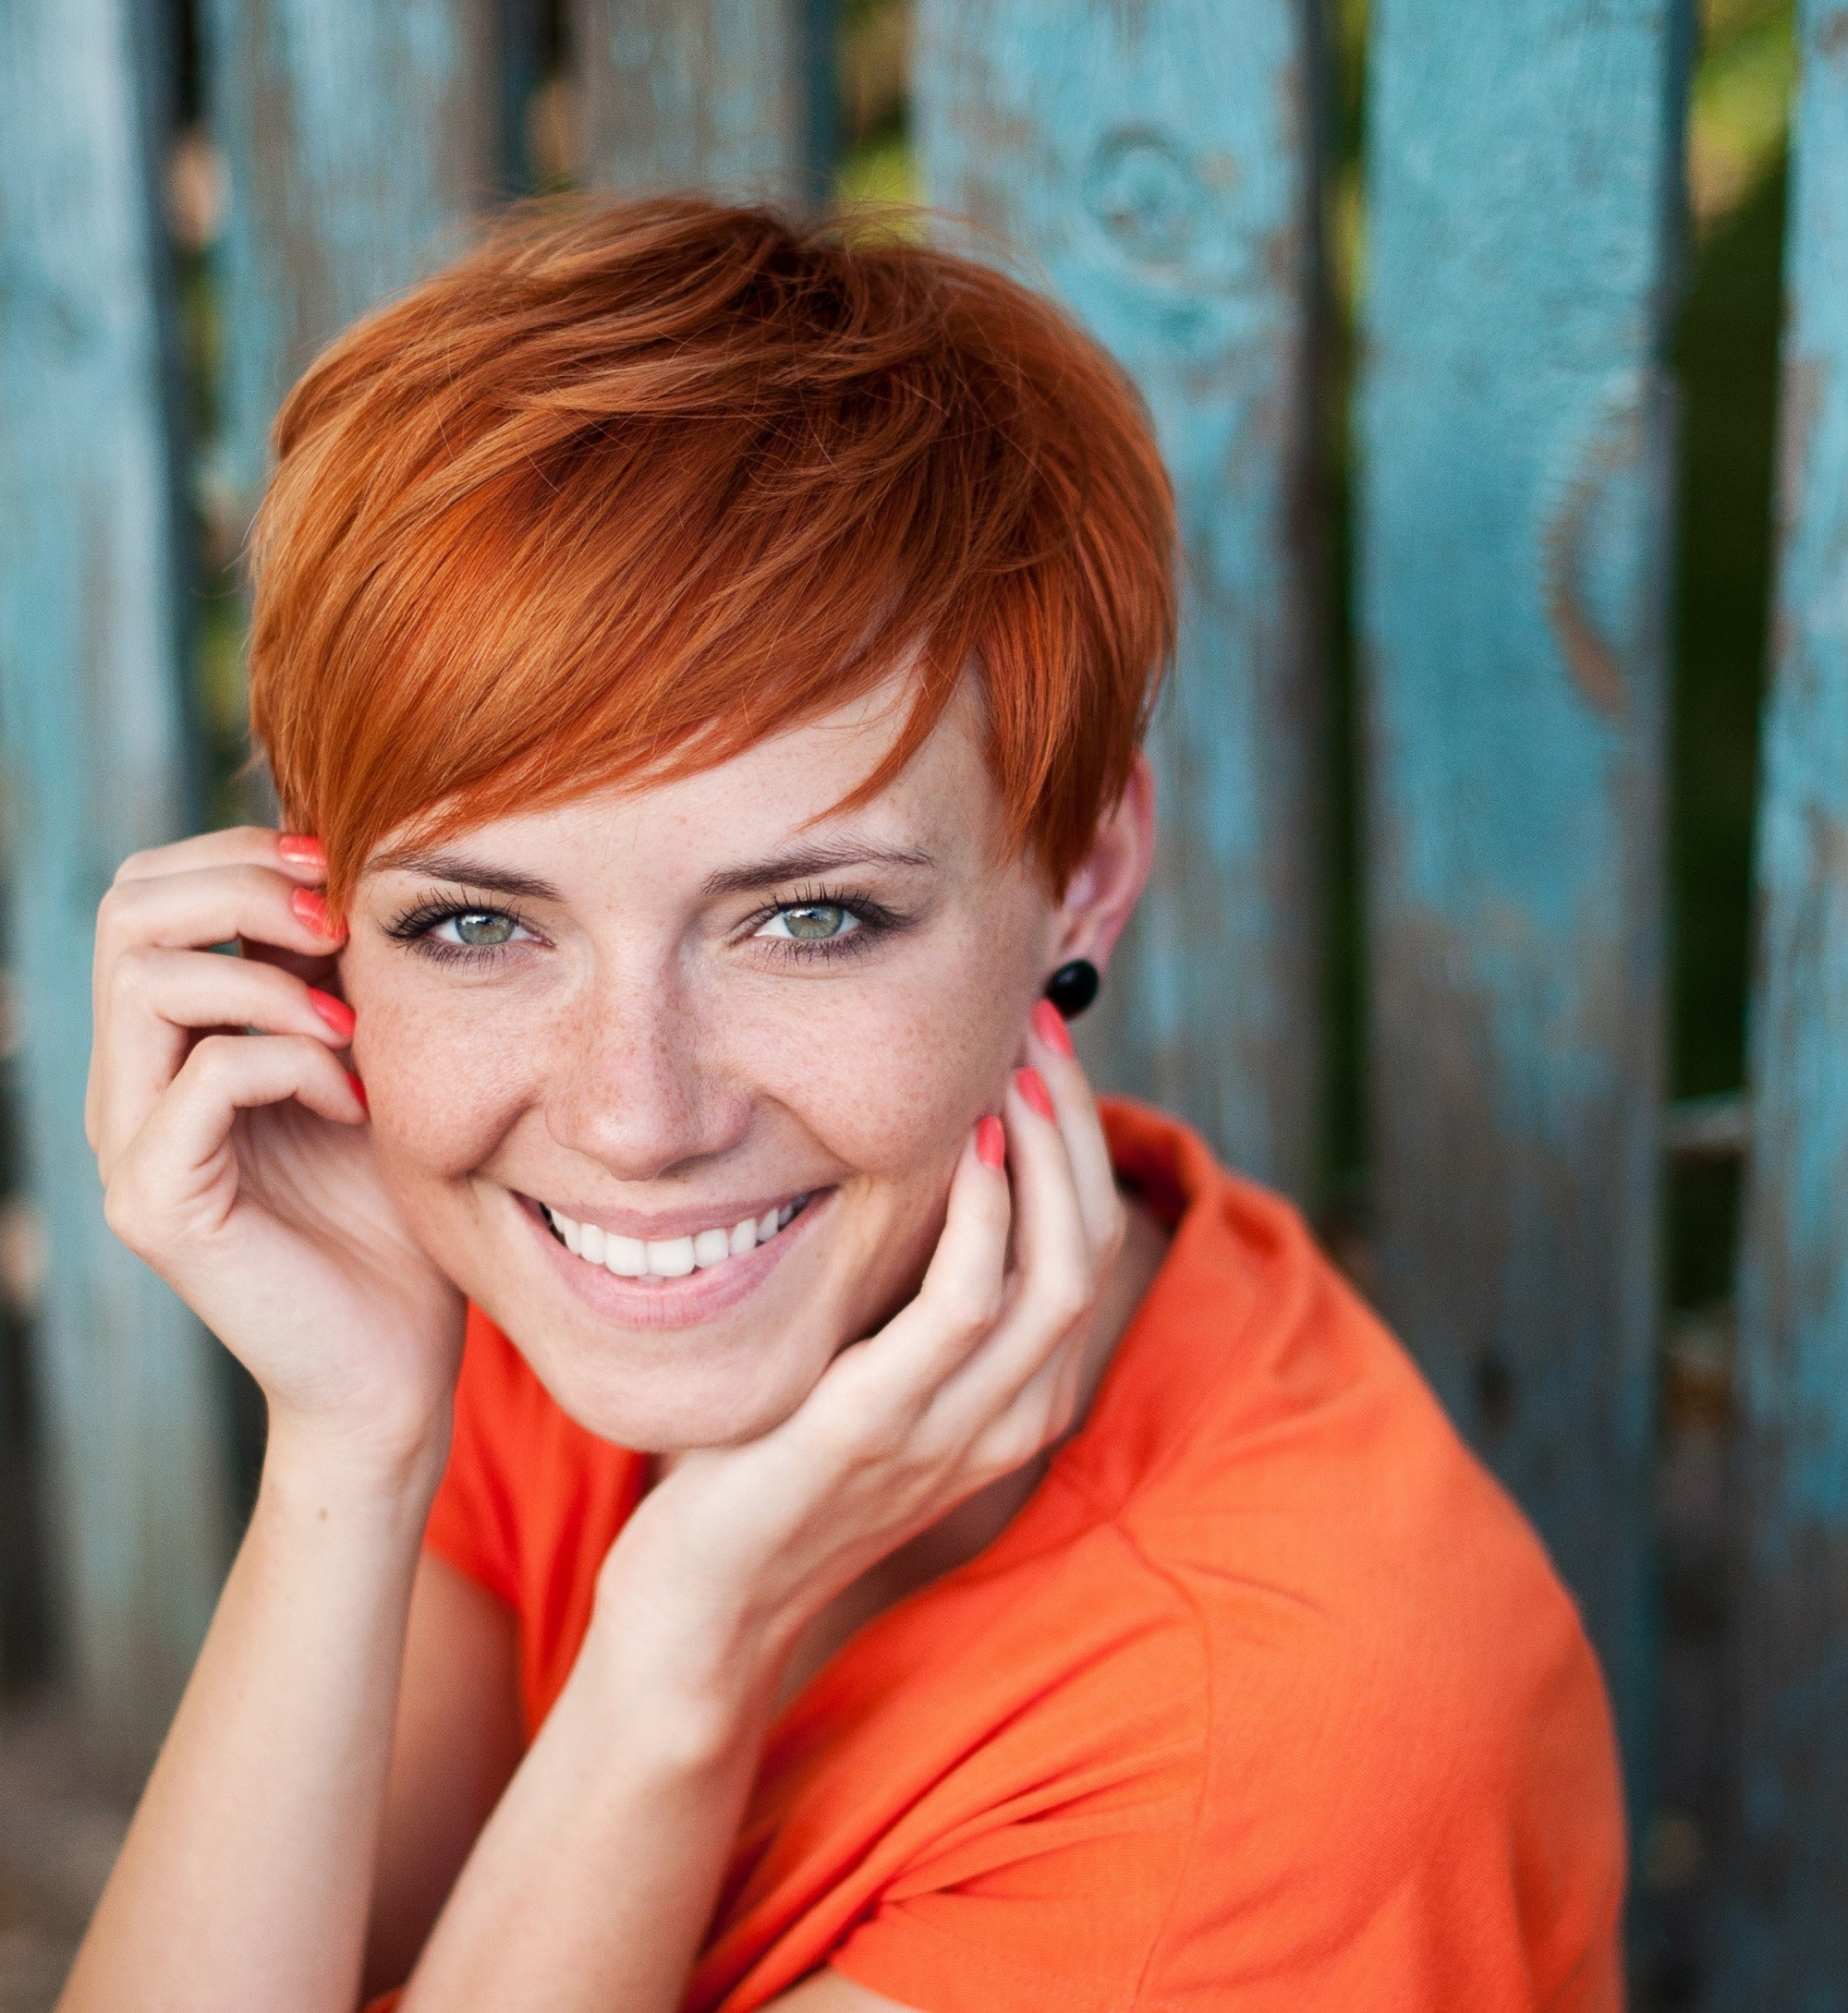 Short red hair: Woman with ginger pixie cut hair